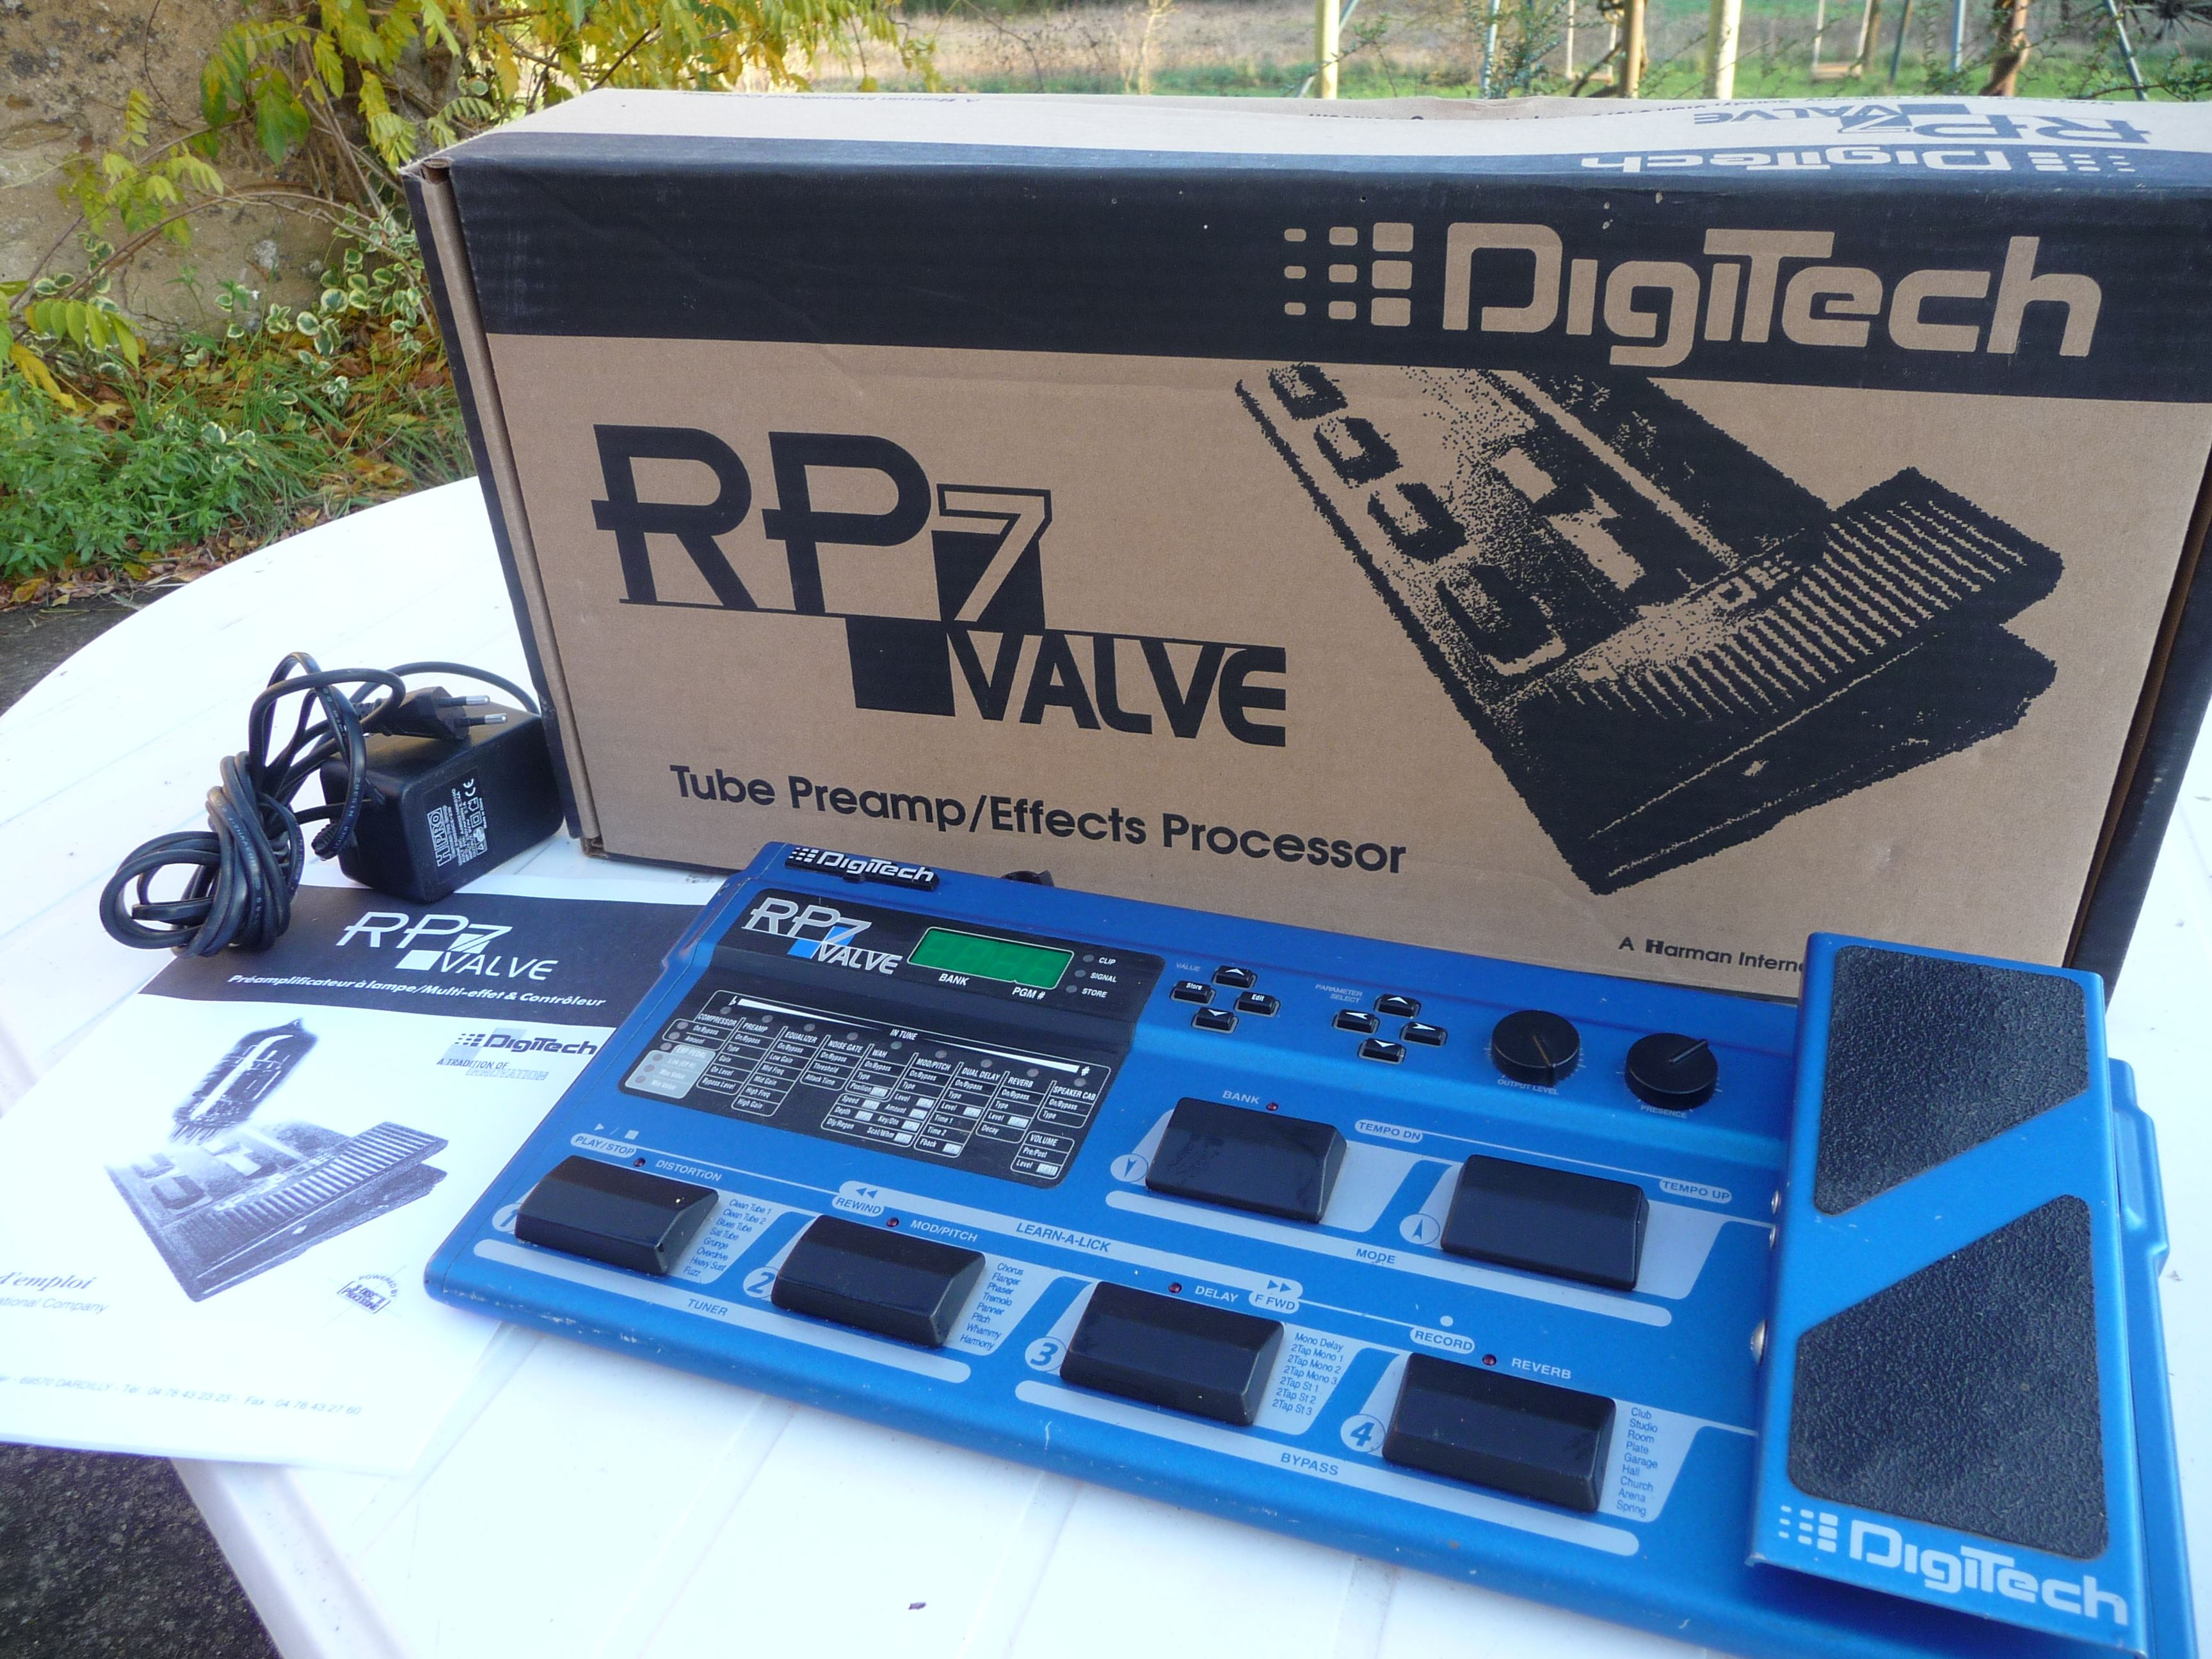 Digitech Rp7 Tube Preamp Effects Processor Controller Effects Processor Guitar Gear Processor